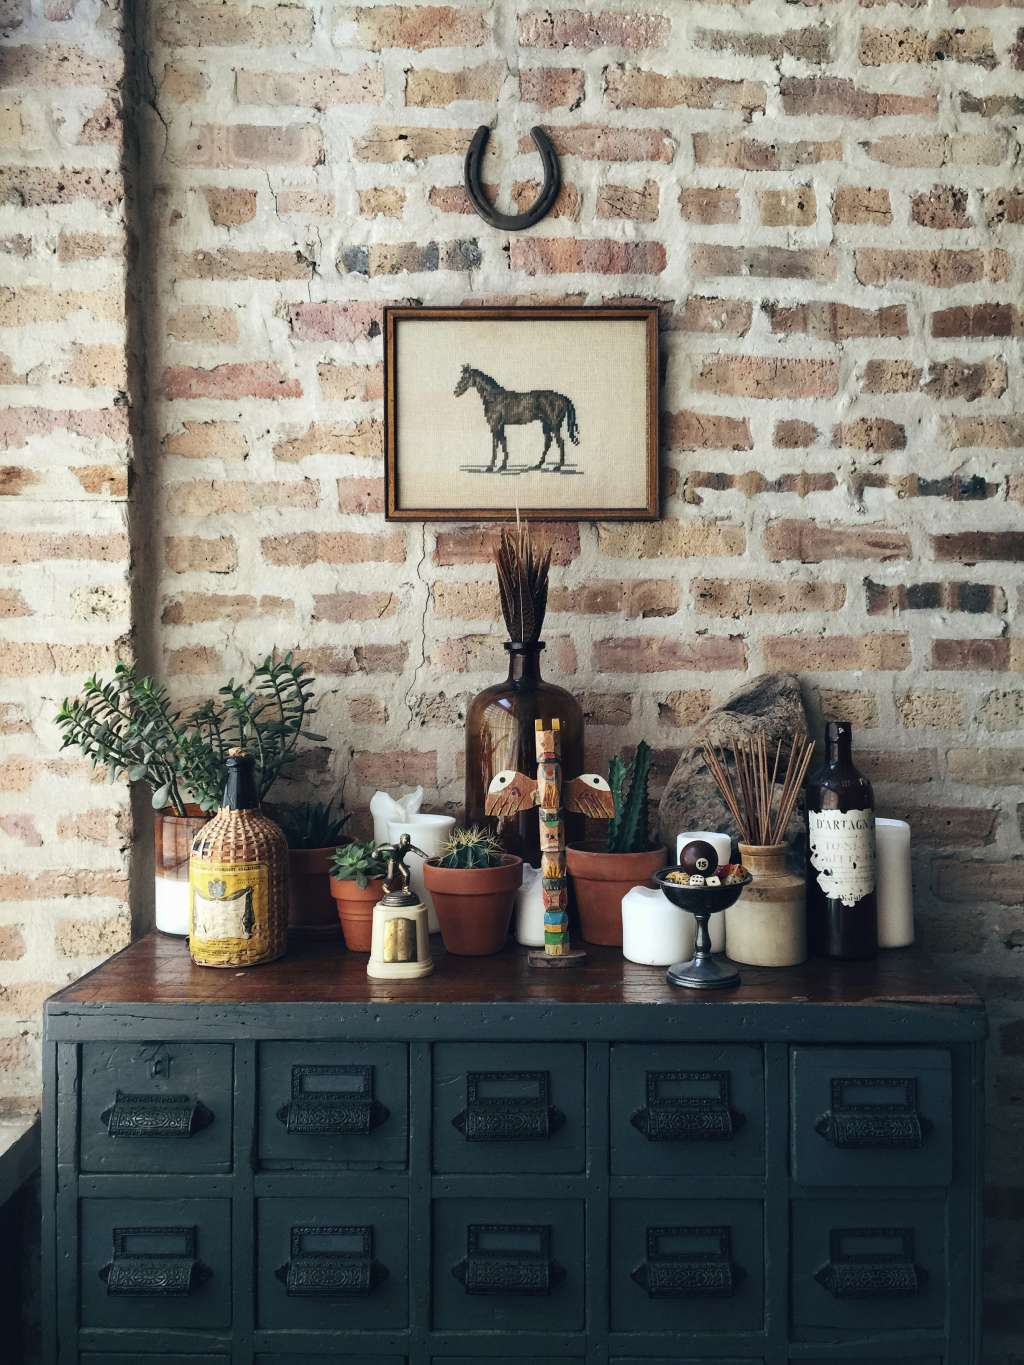 How To Decorate Your Home With Personality: How To Add Personality To Your Home Design